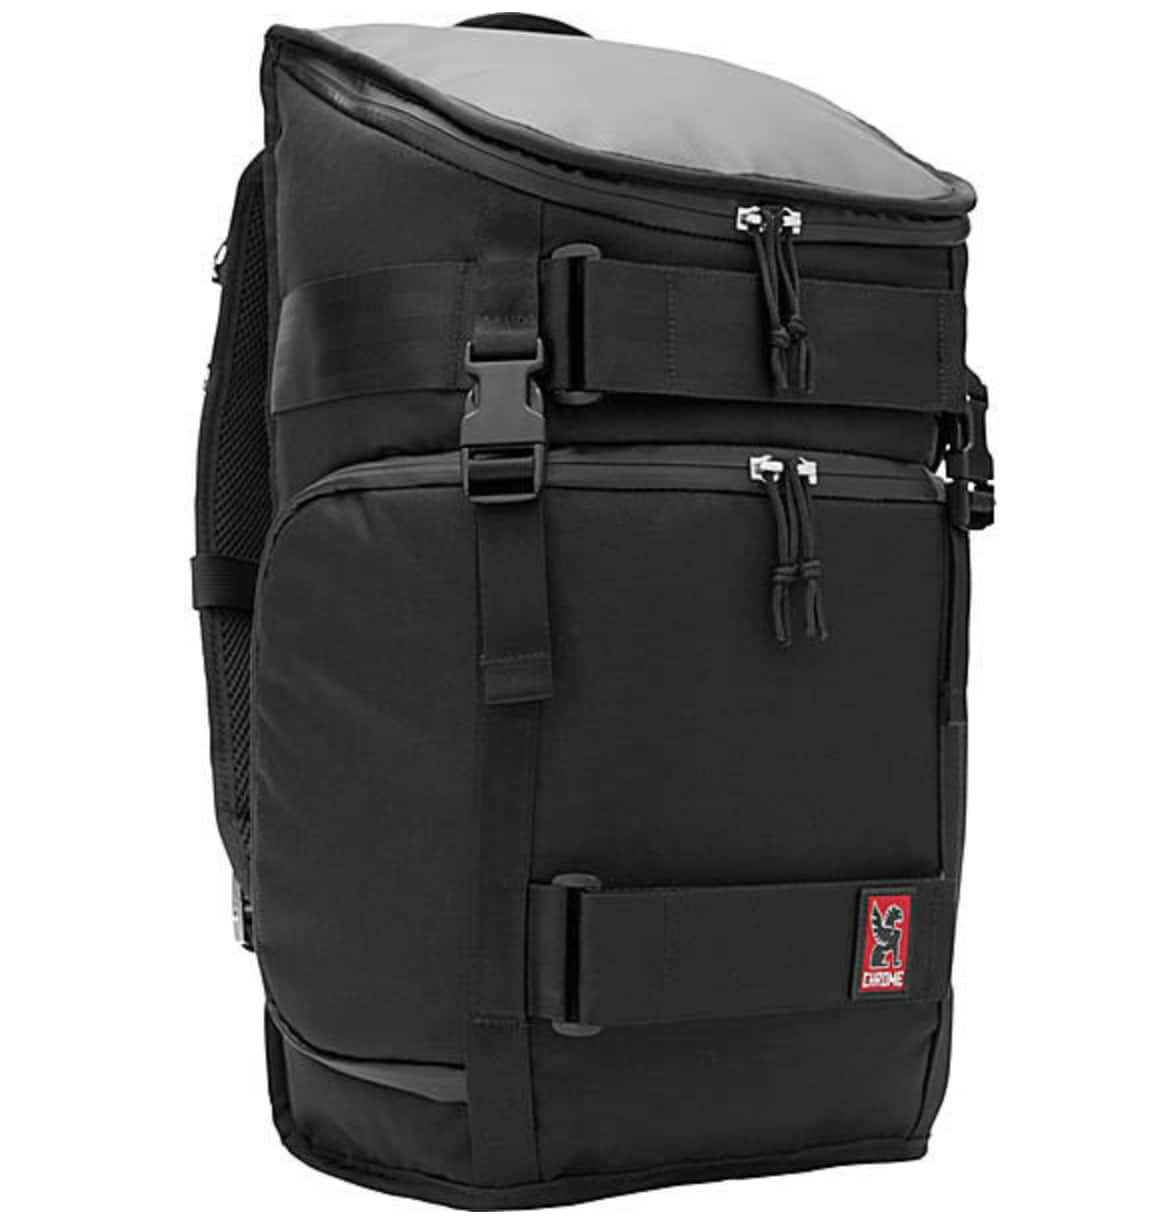 Chrome Niko Pack Camera Backpack for $106 OR BETTER with Chase Pay for new customers @ eBags